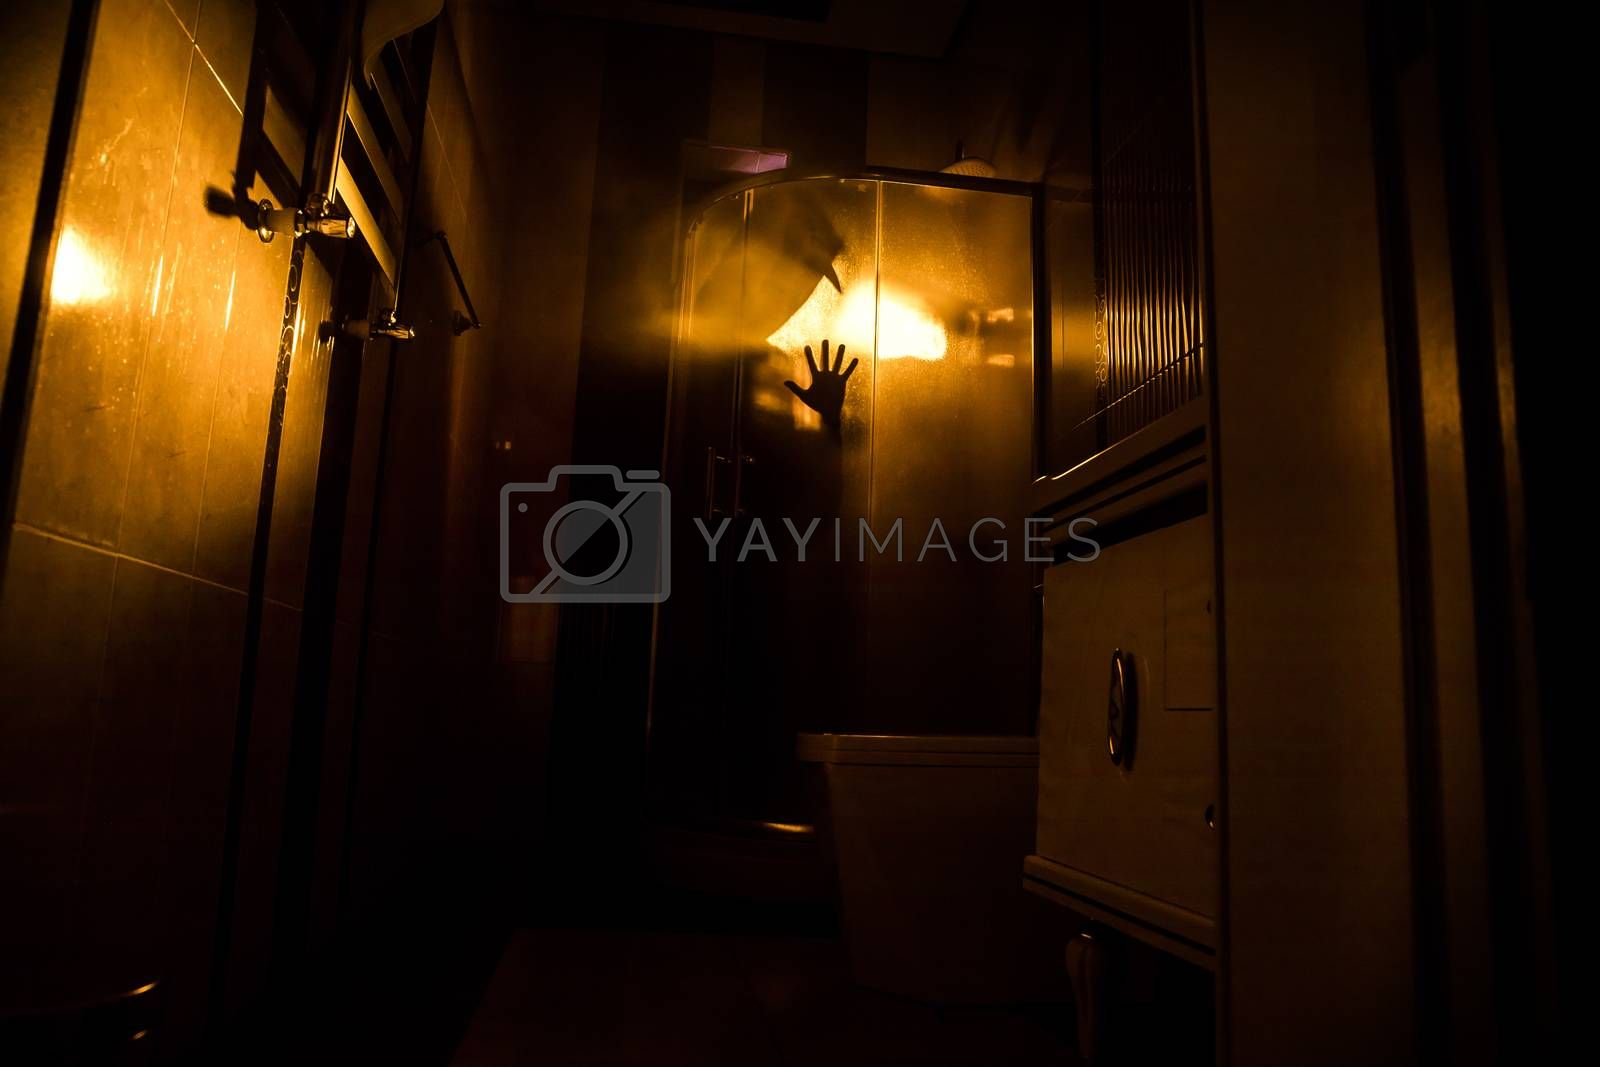 Halloween concept. Horror silhouette of person in shower cabin. Killer maniac inside bathroom with glowing lights. Long exposure